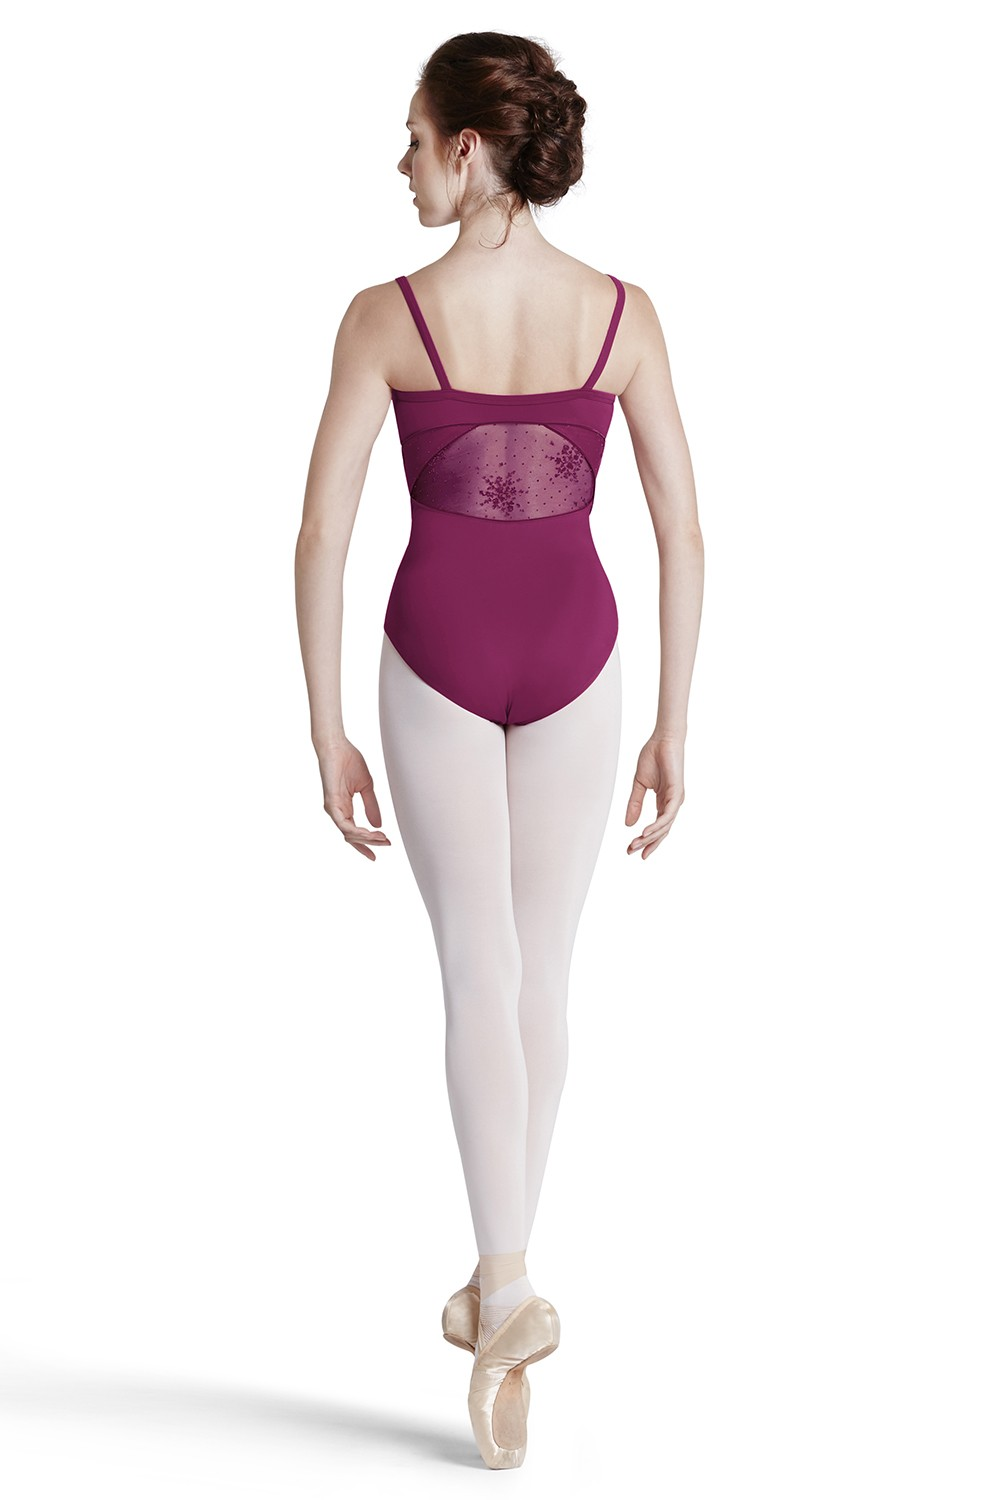 Floral Flock Camisole Leotard Women's Dance Leotards